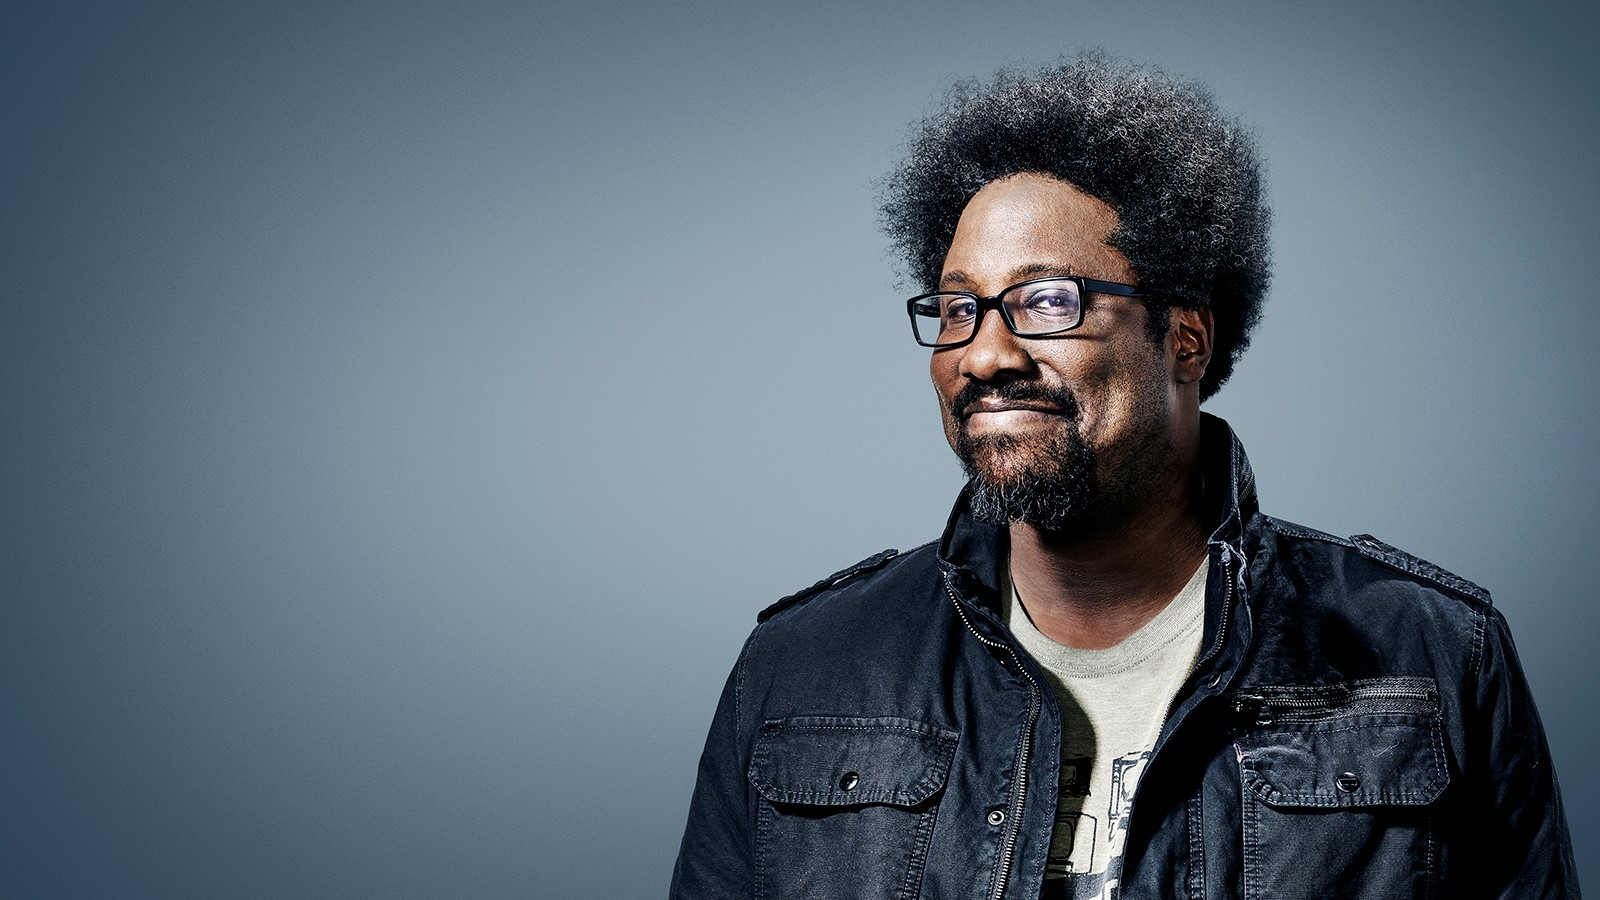 CNN Profiles - W. Kamau Bell - Host - CNN.com